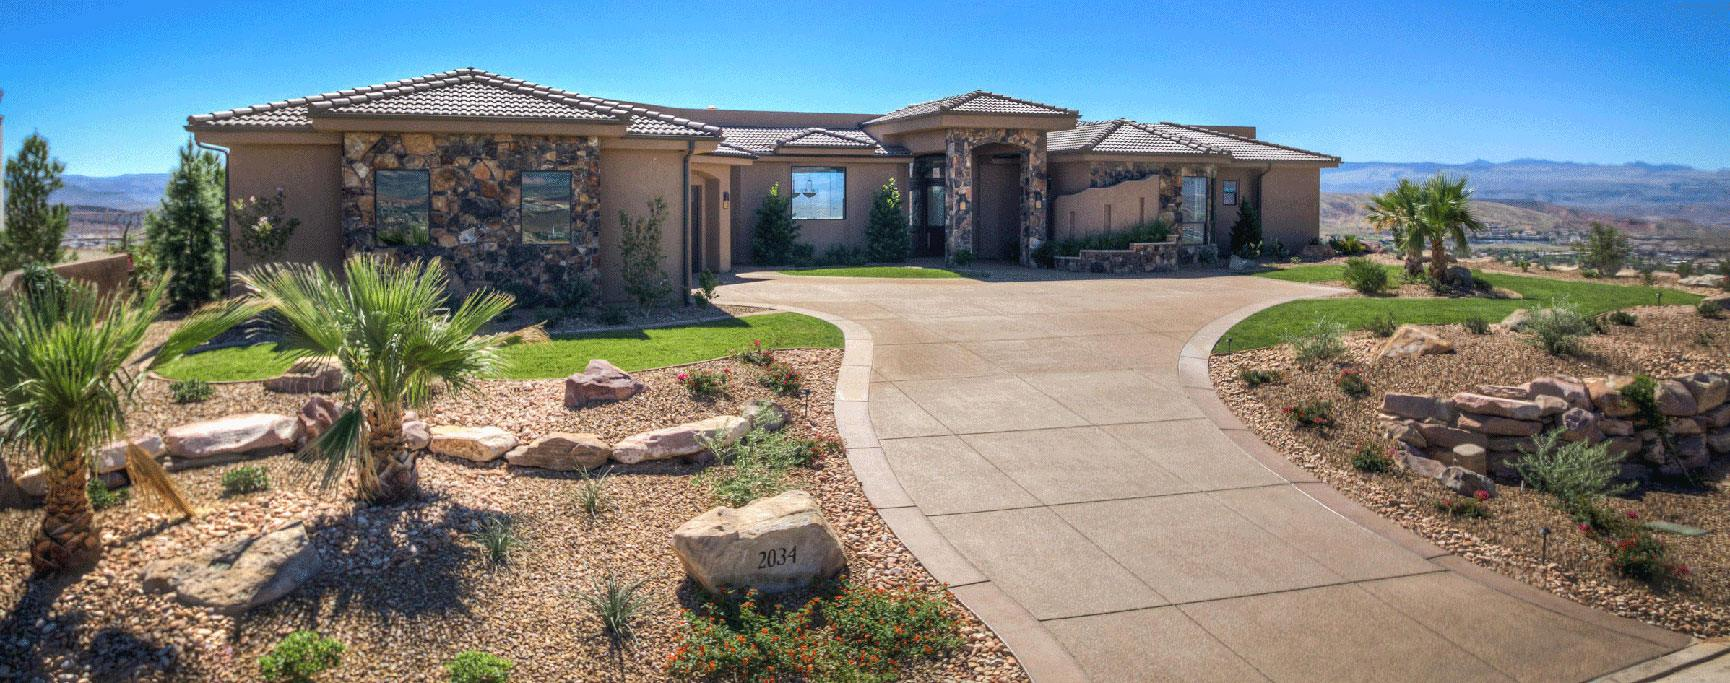 How Realtor In St. George, Utah Is Helping To Get Homes For Rent In St. George, Utah